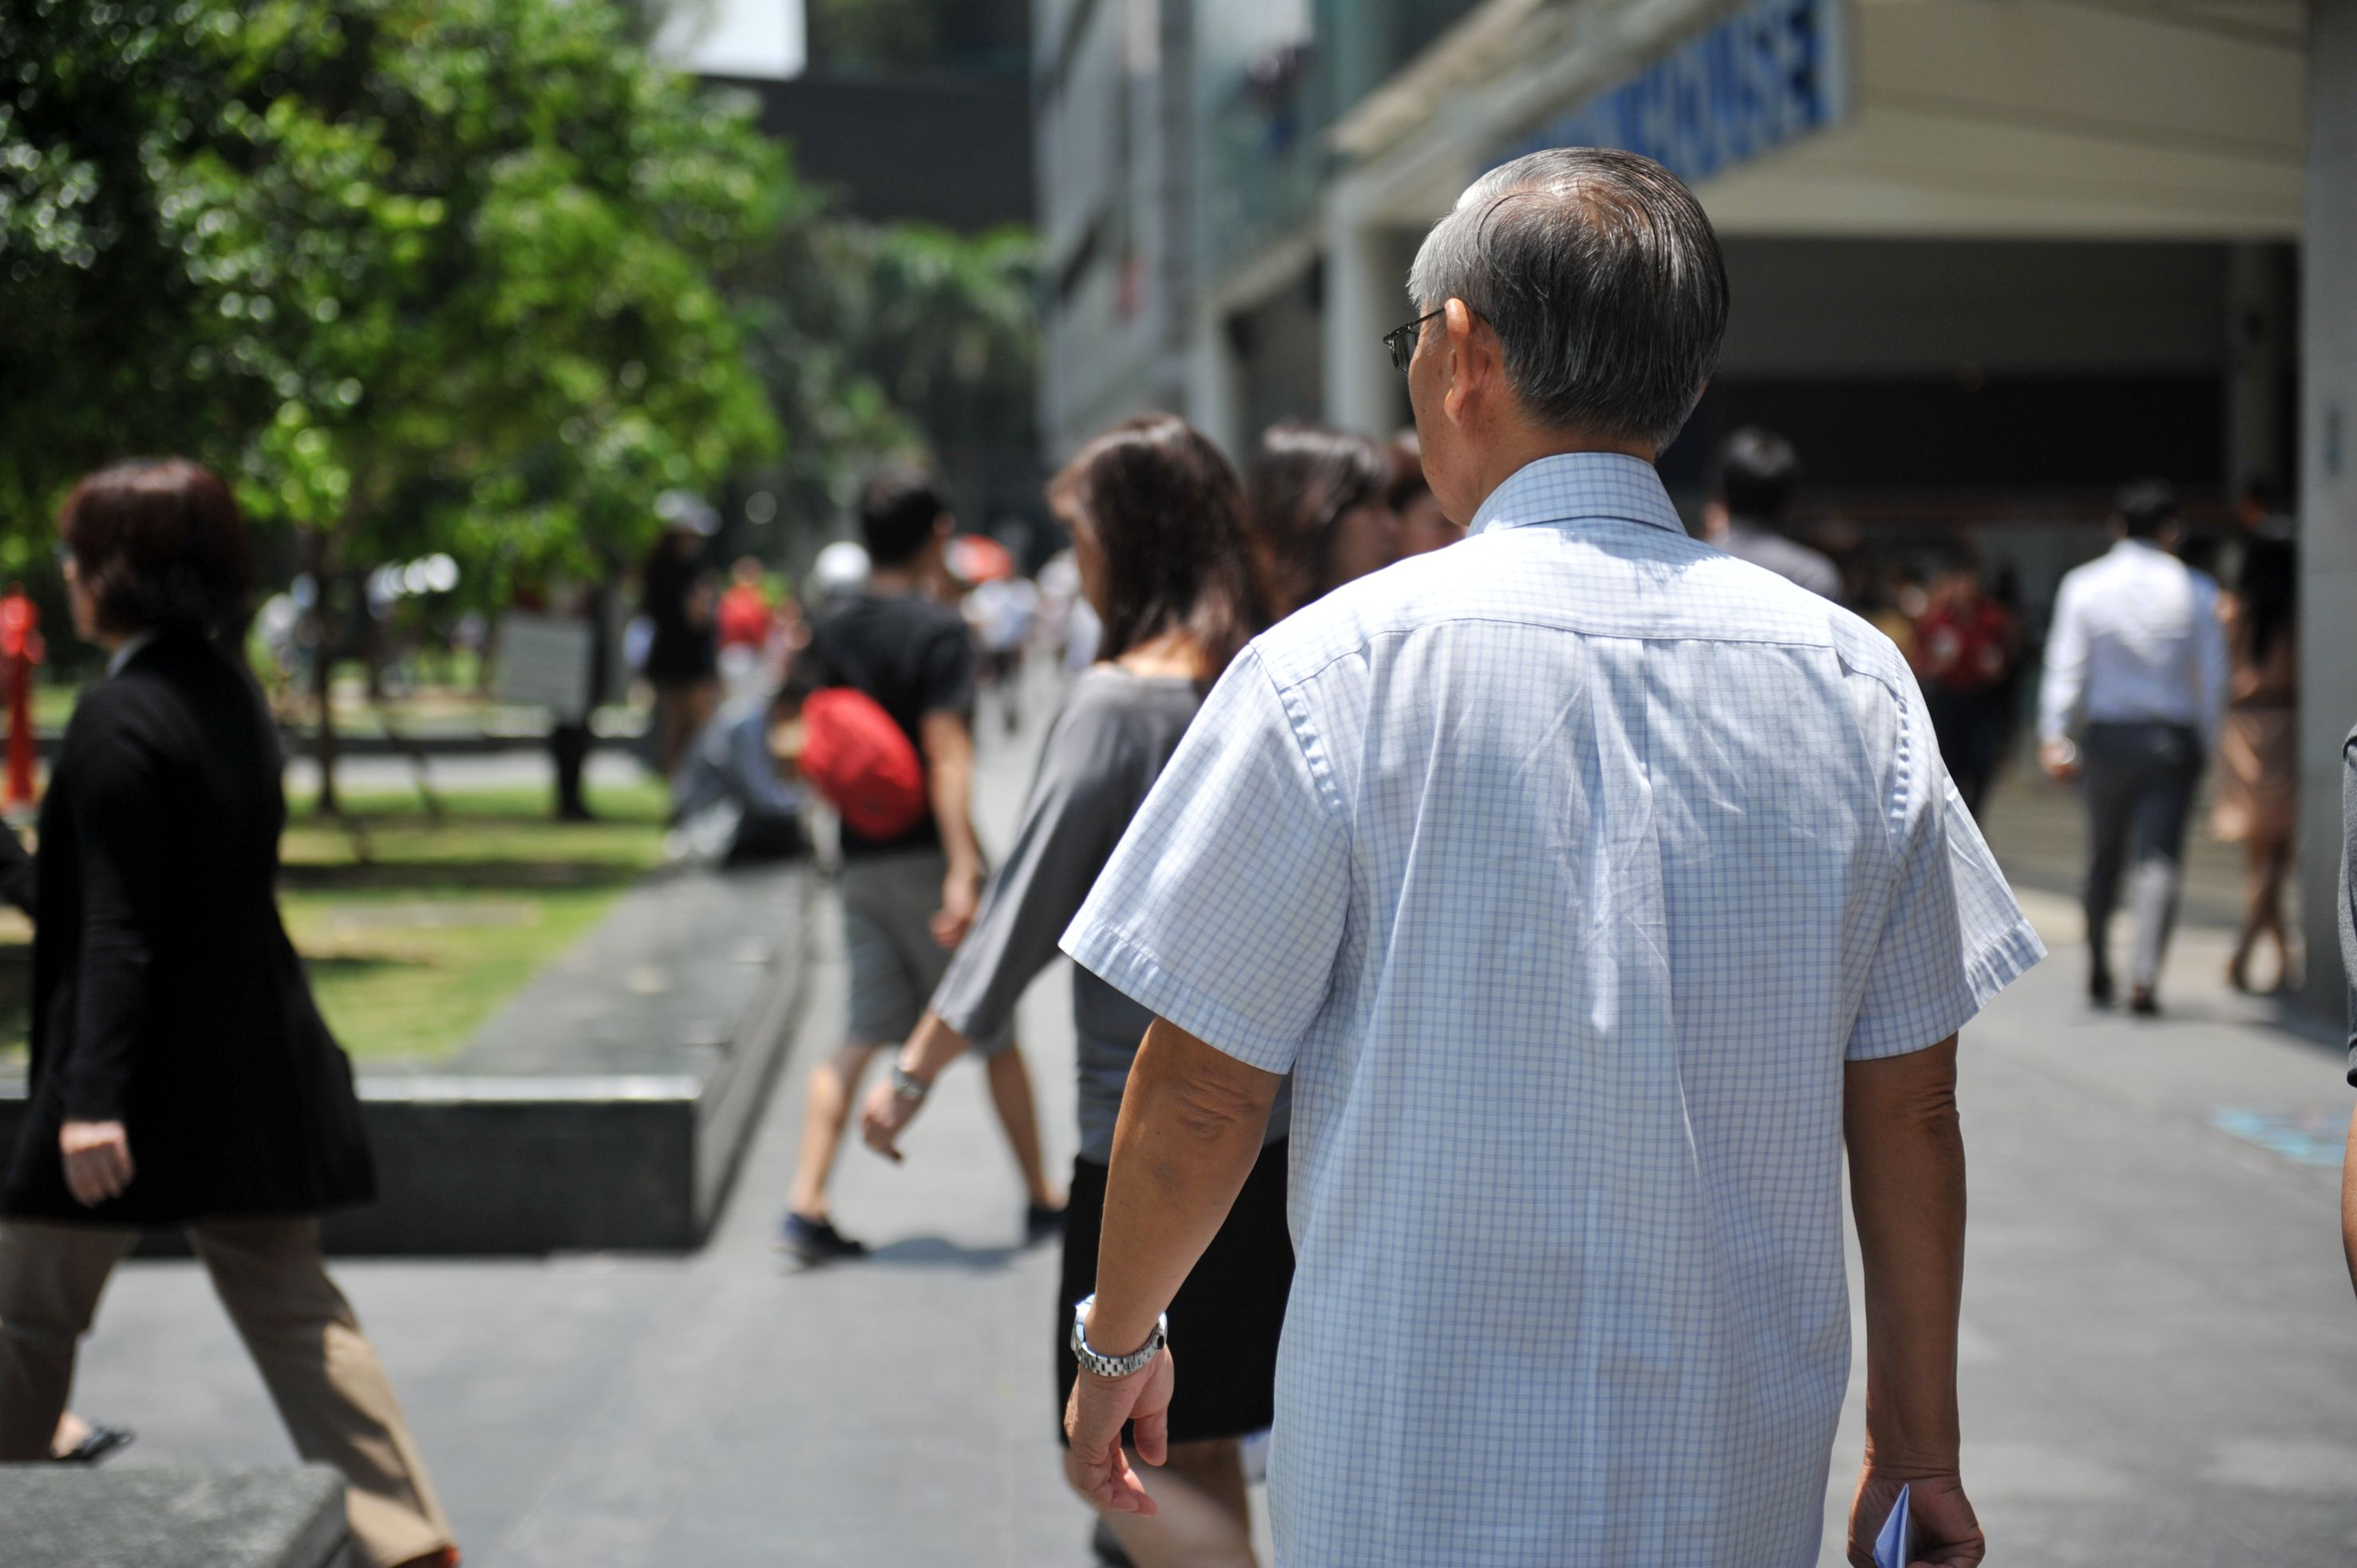 Singaporeans expect retirement savings to last 13 years